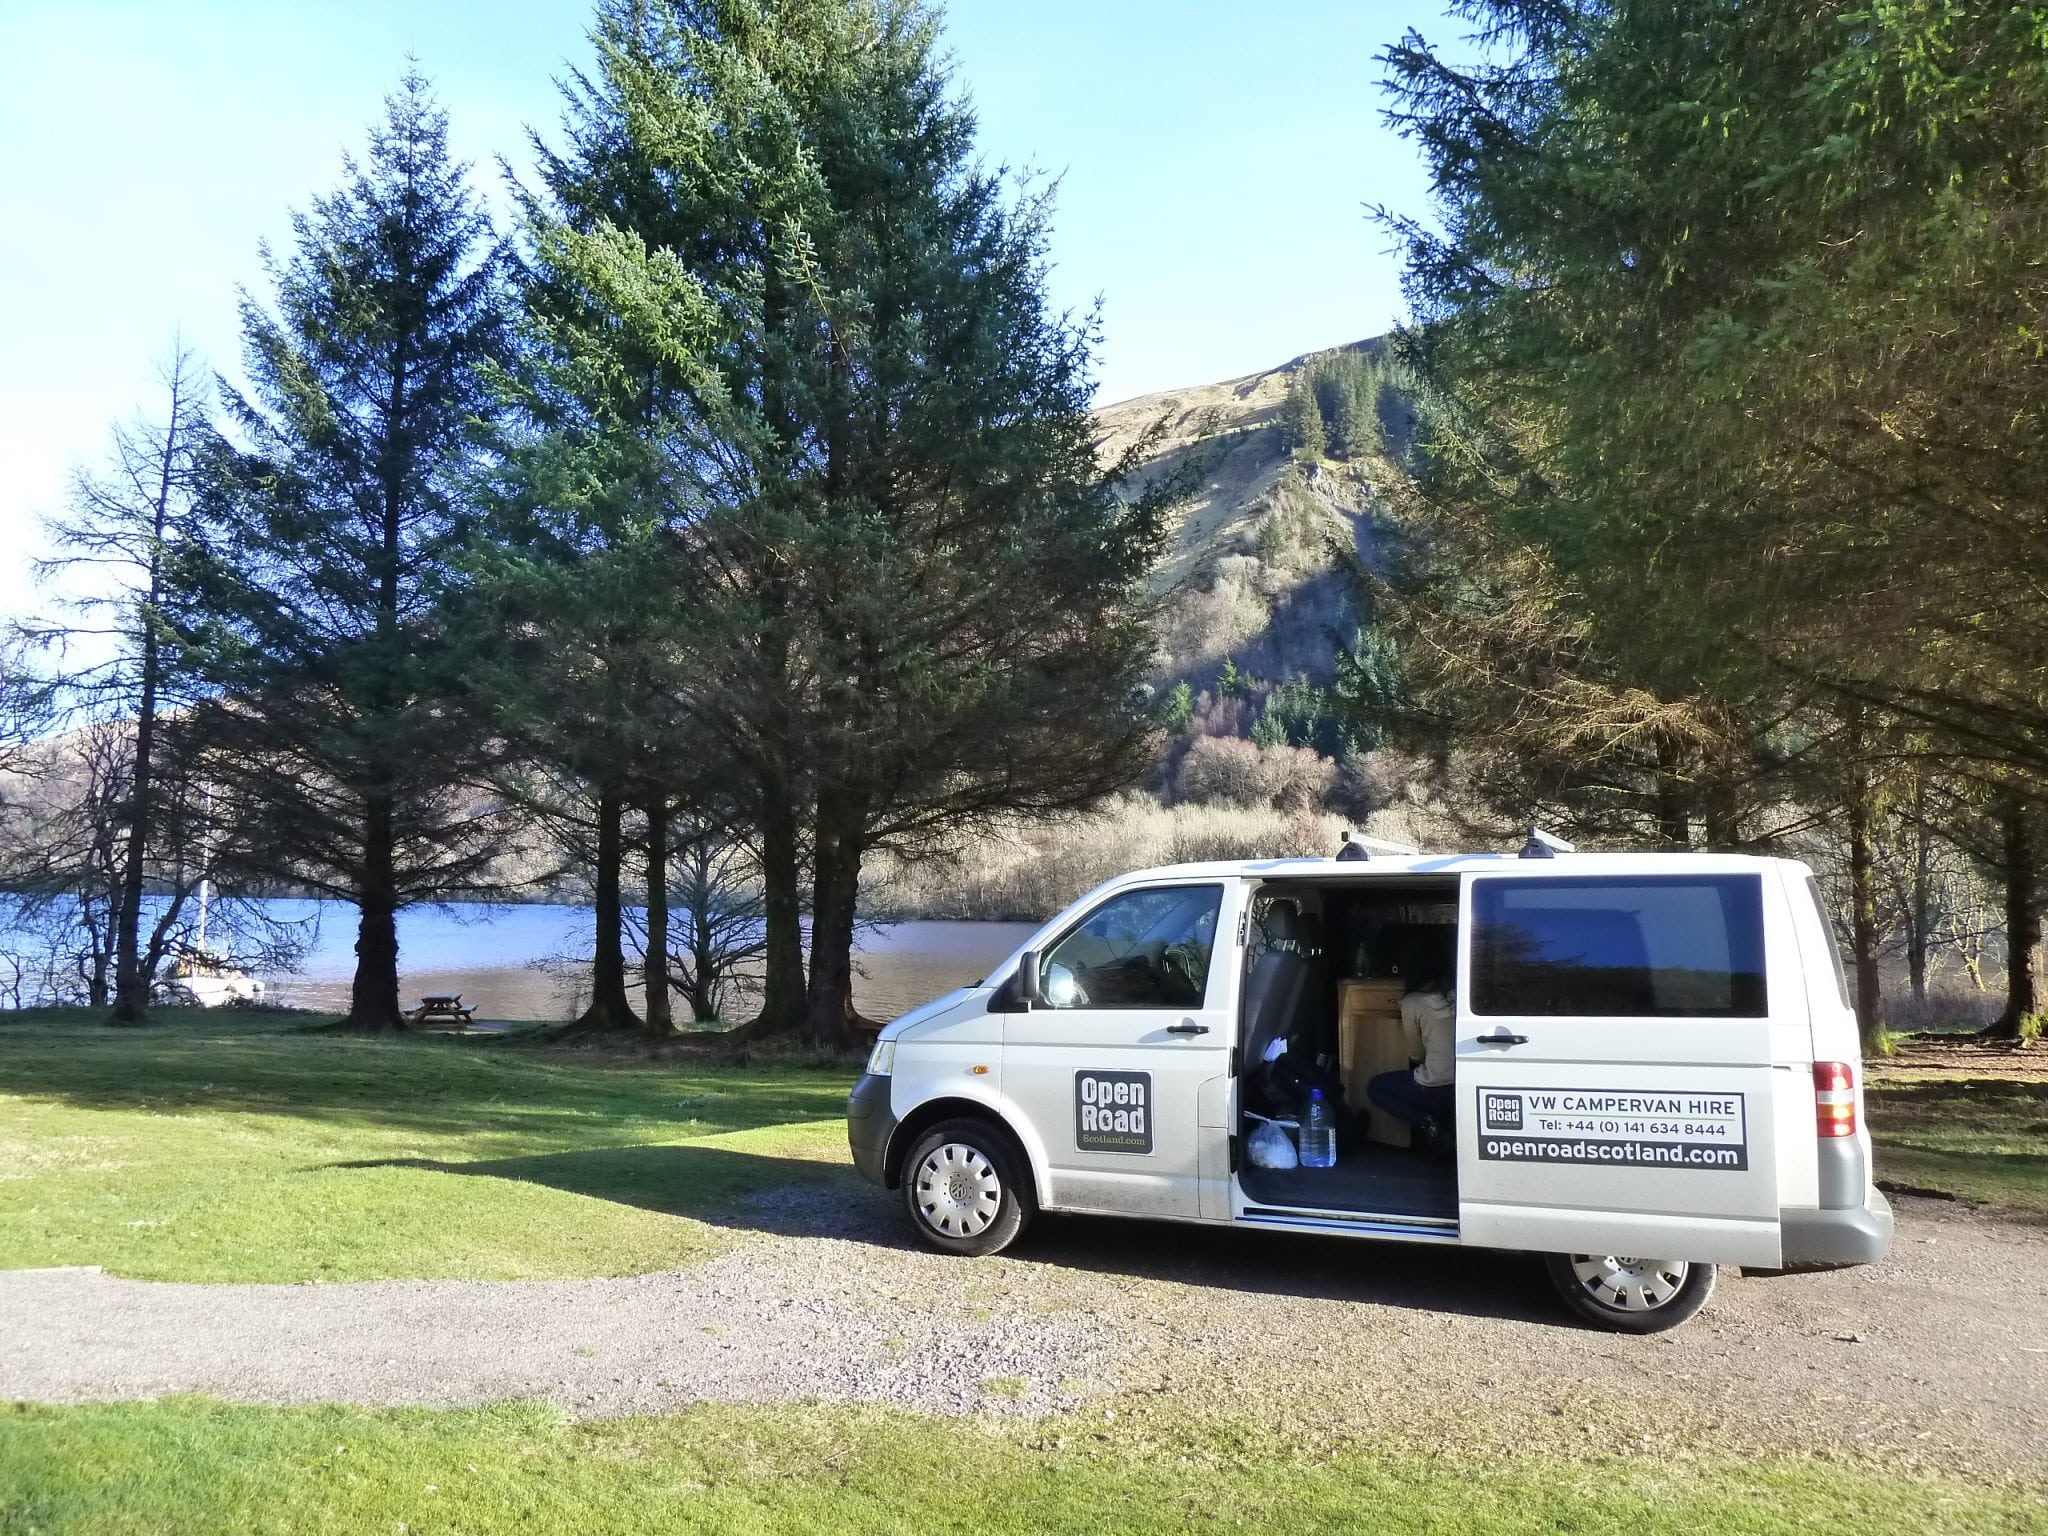 Unique  Scotland In Motorhome Hired From Lowland Motorhome Hire With My